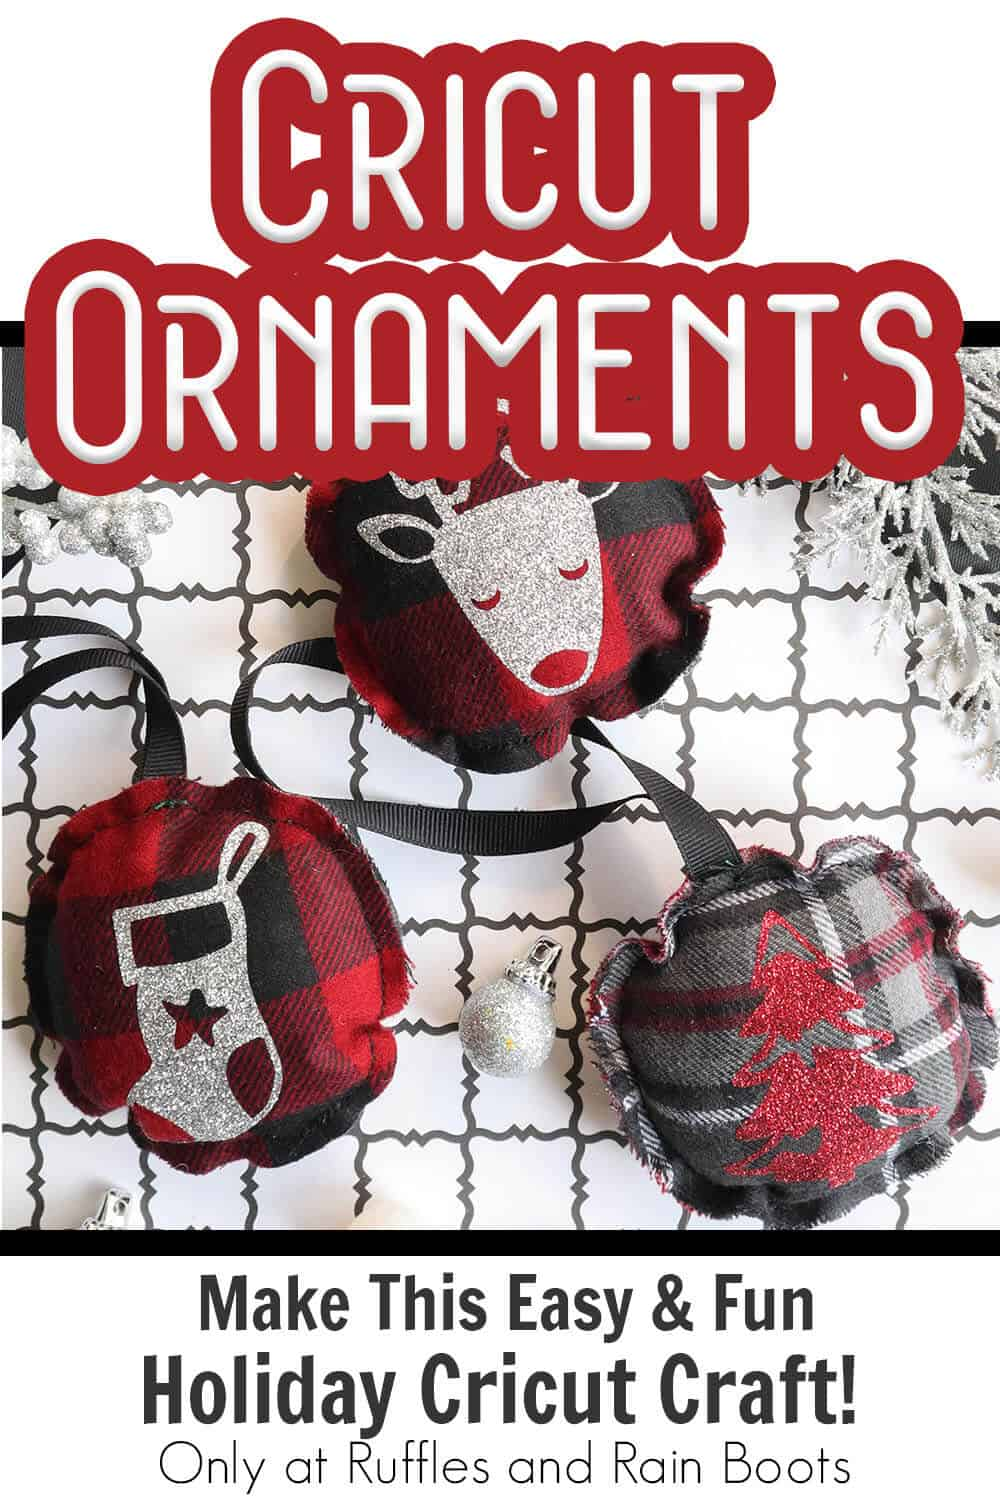 cricut cut file set christmas ornament with text which reads cricut ornaments make this easy & fun holiday cricut craft!